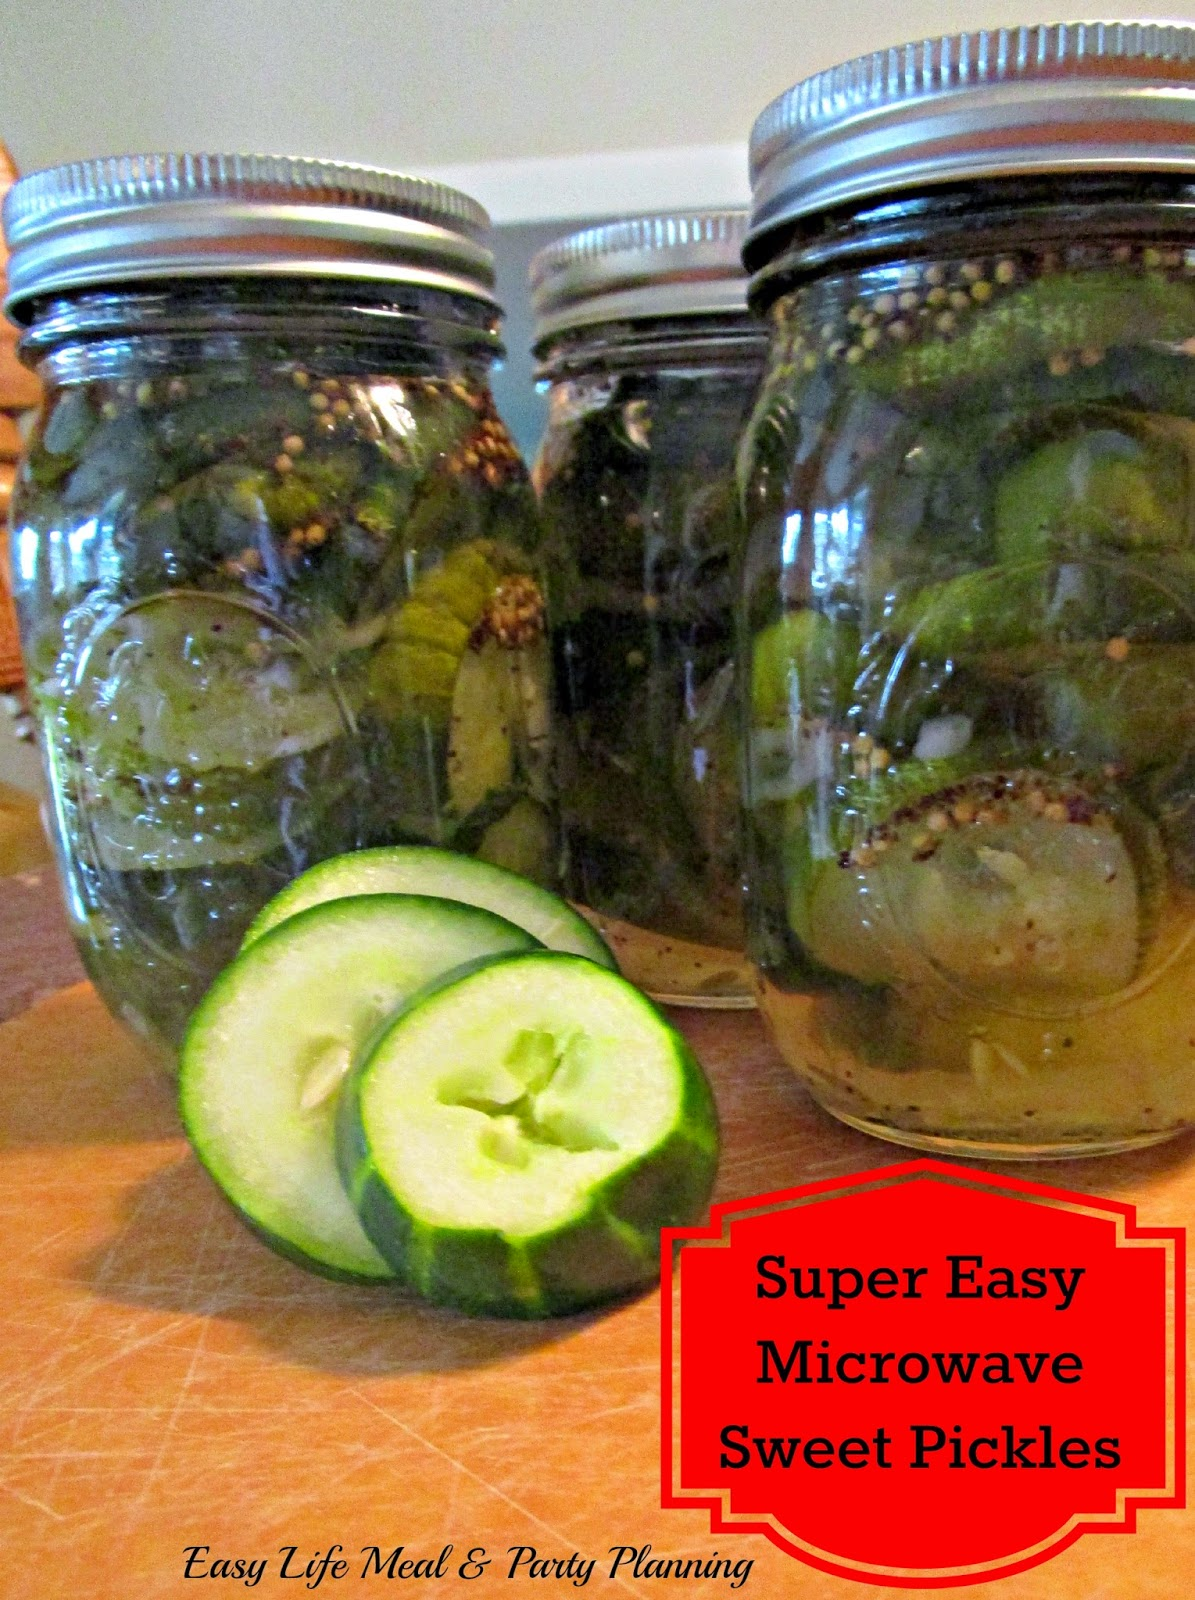 Easy Life Meal & Party Planning: Quick & Easy Sweet Pickles - Microwave Quick and quite the time saver yet you have that sweet crispy homemade deliciousness!